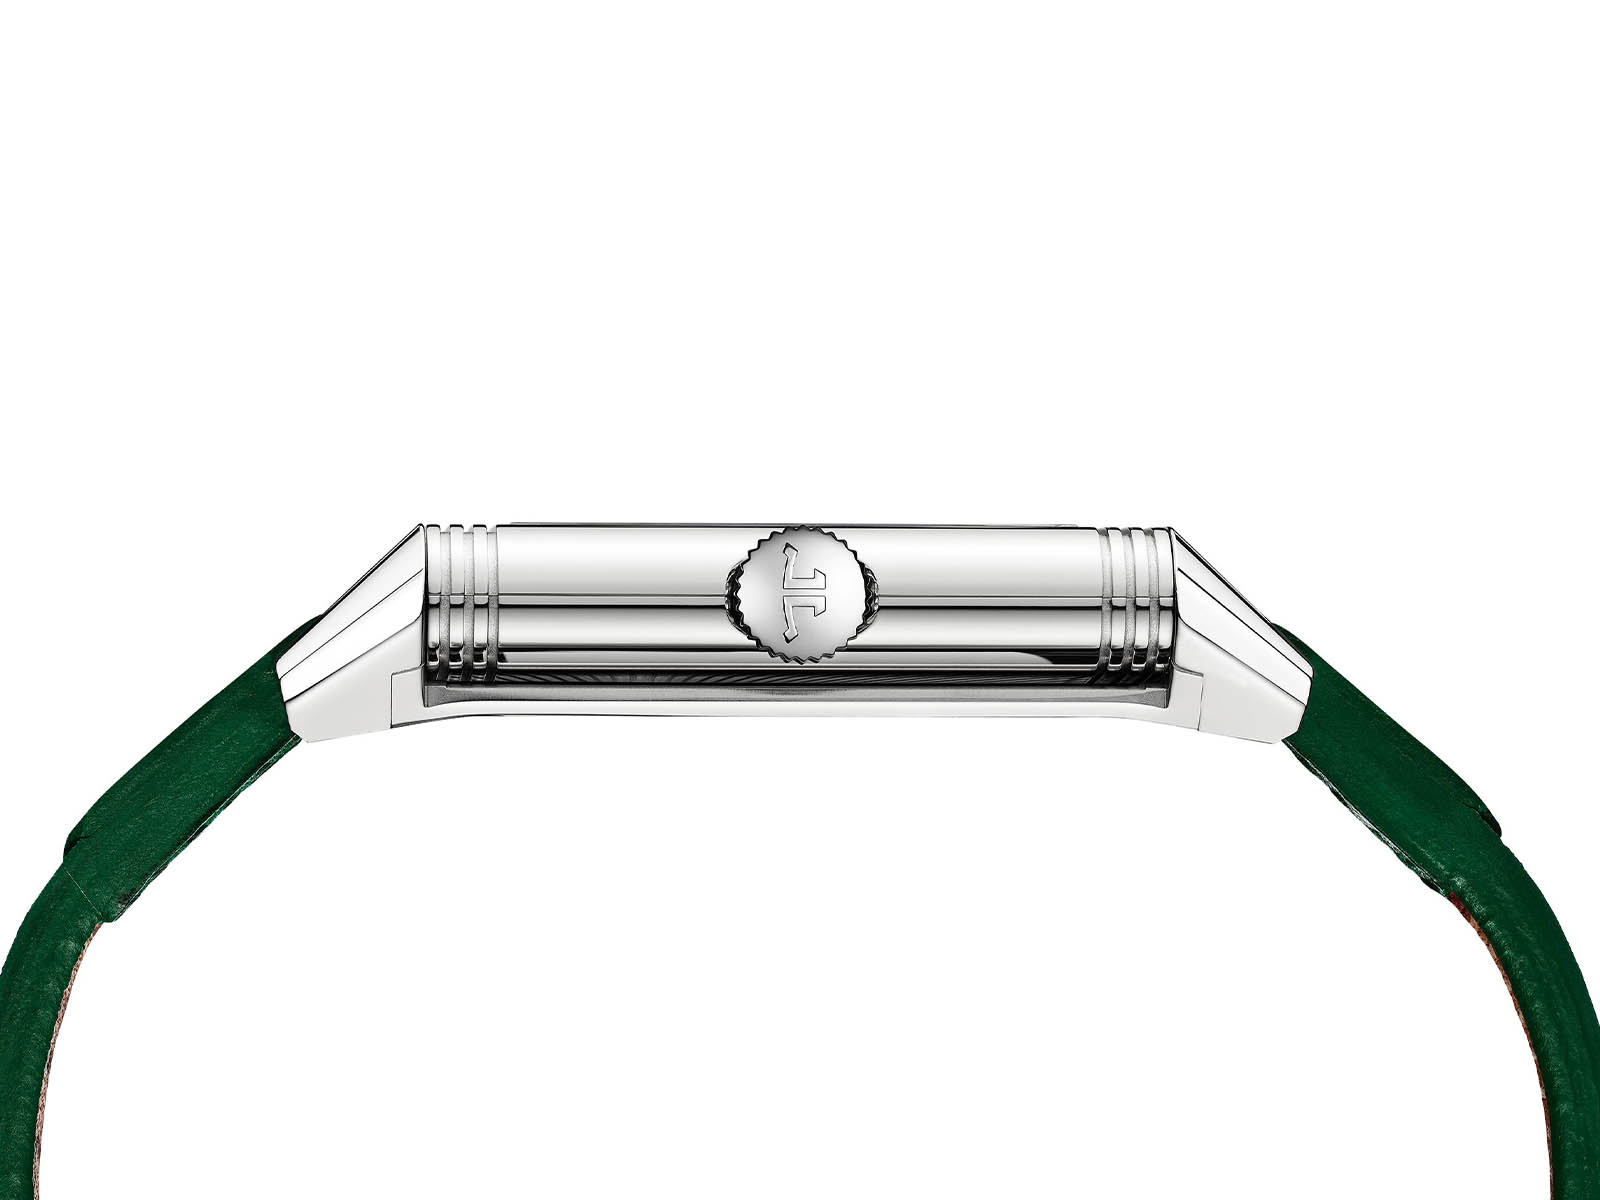 q3978430-jaeger-lecoultre-reverso-tribute-small-seconds-green-dial-4.jpg